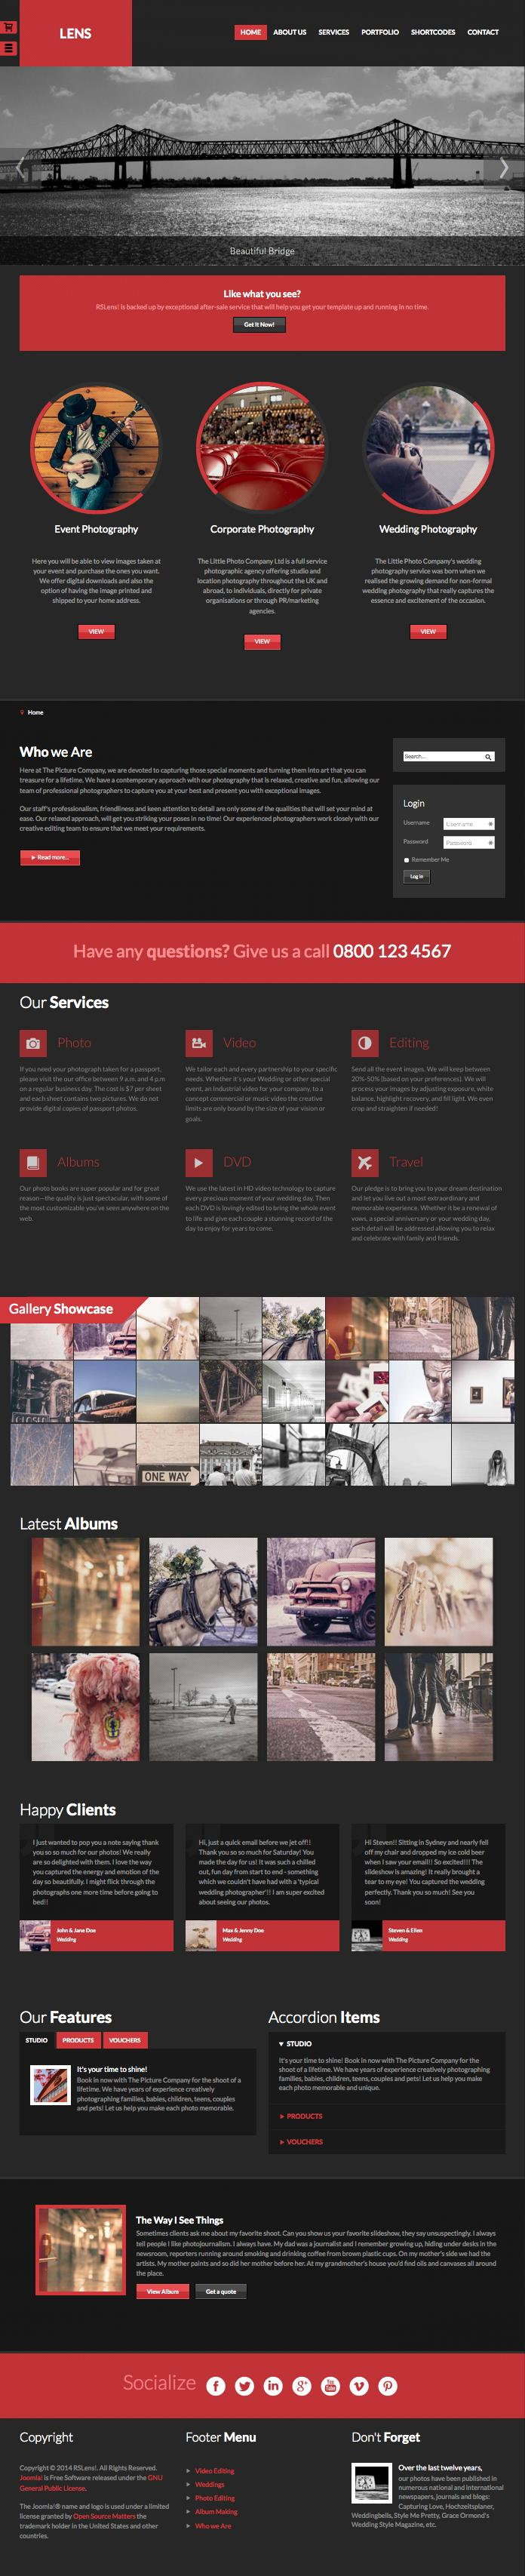 RSLens Joomla Events Photography Template